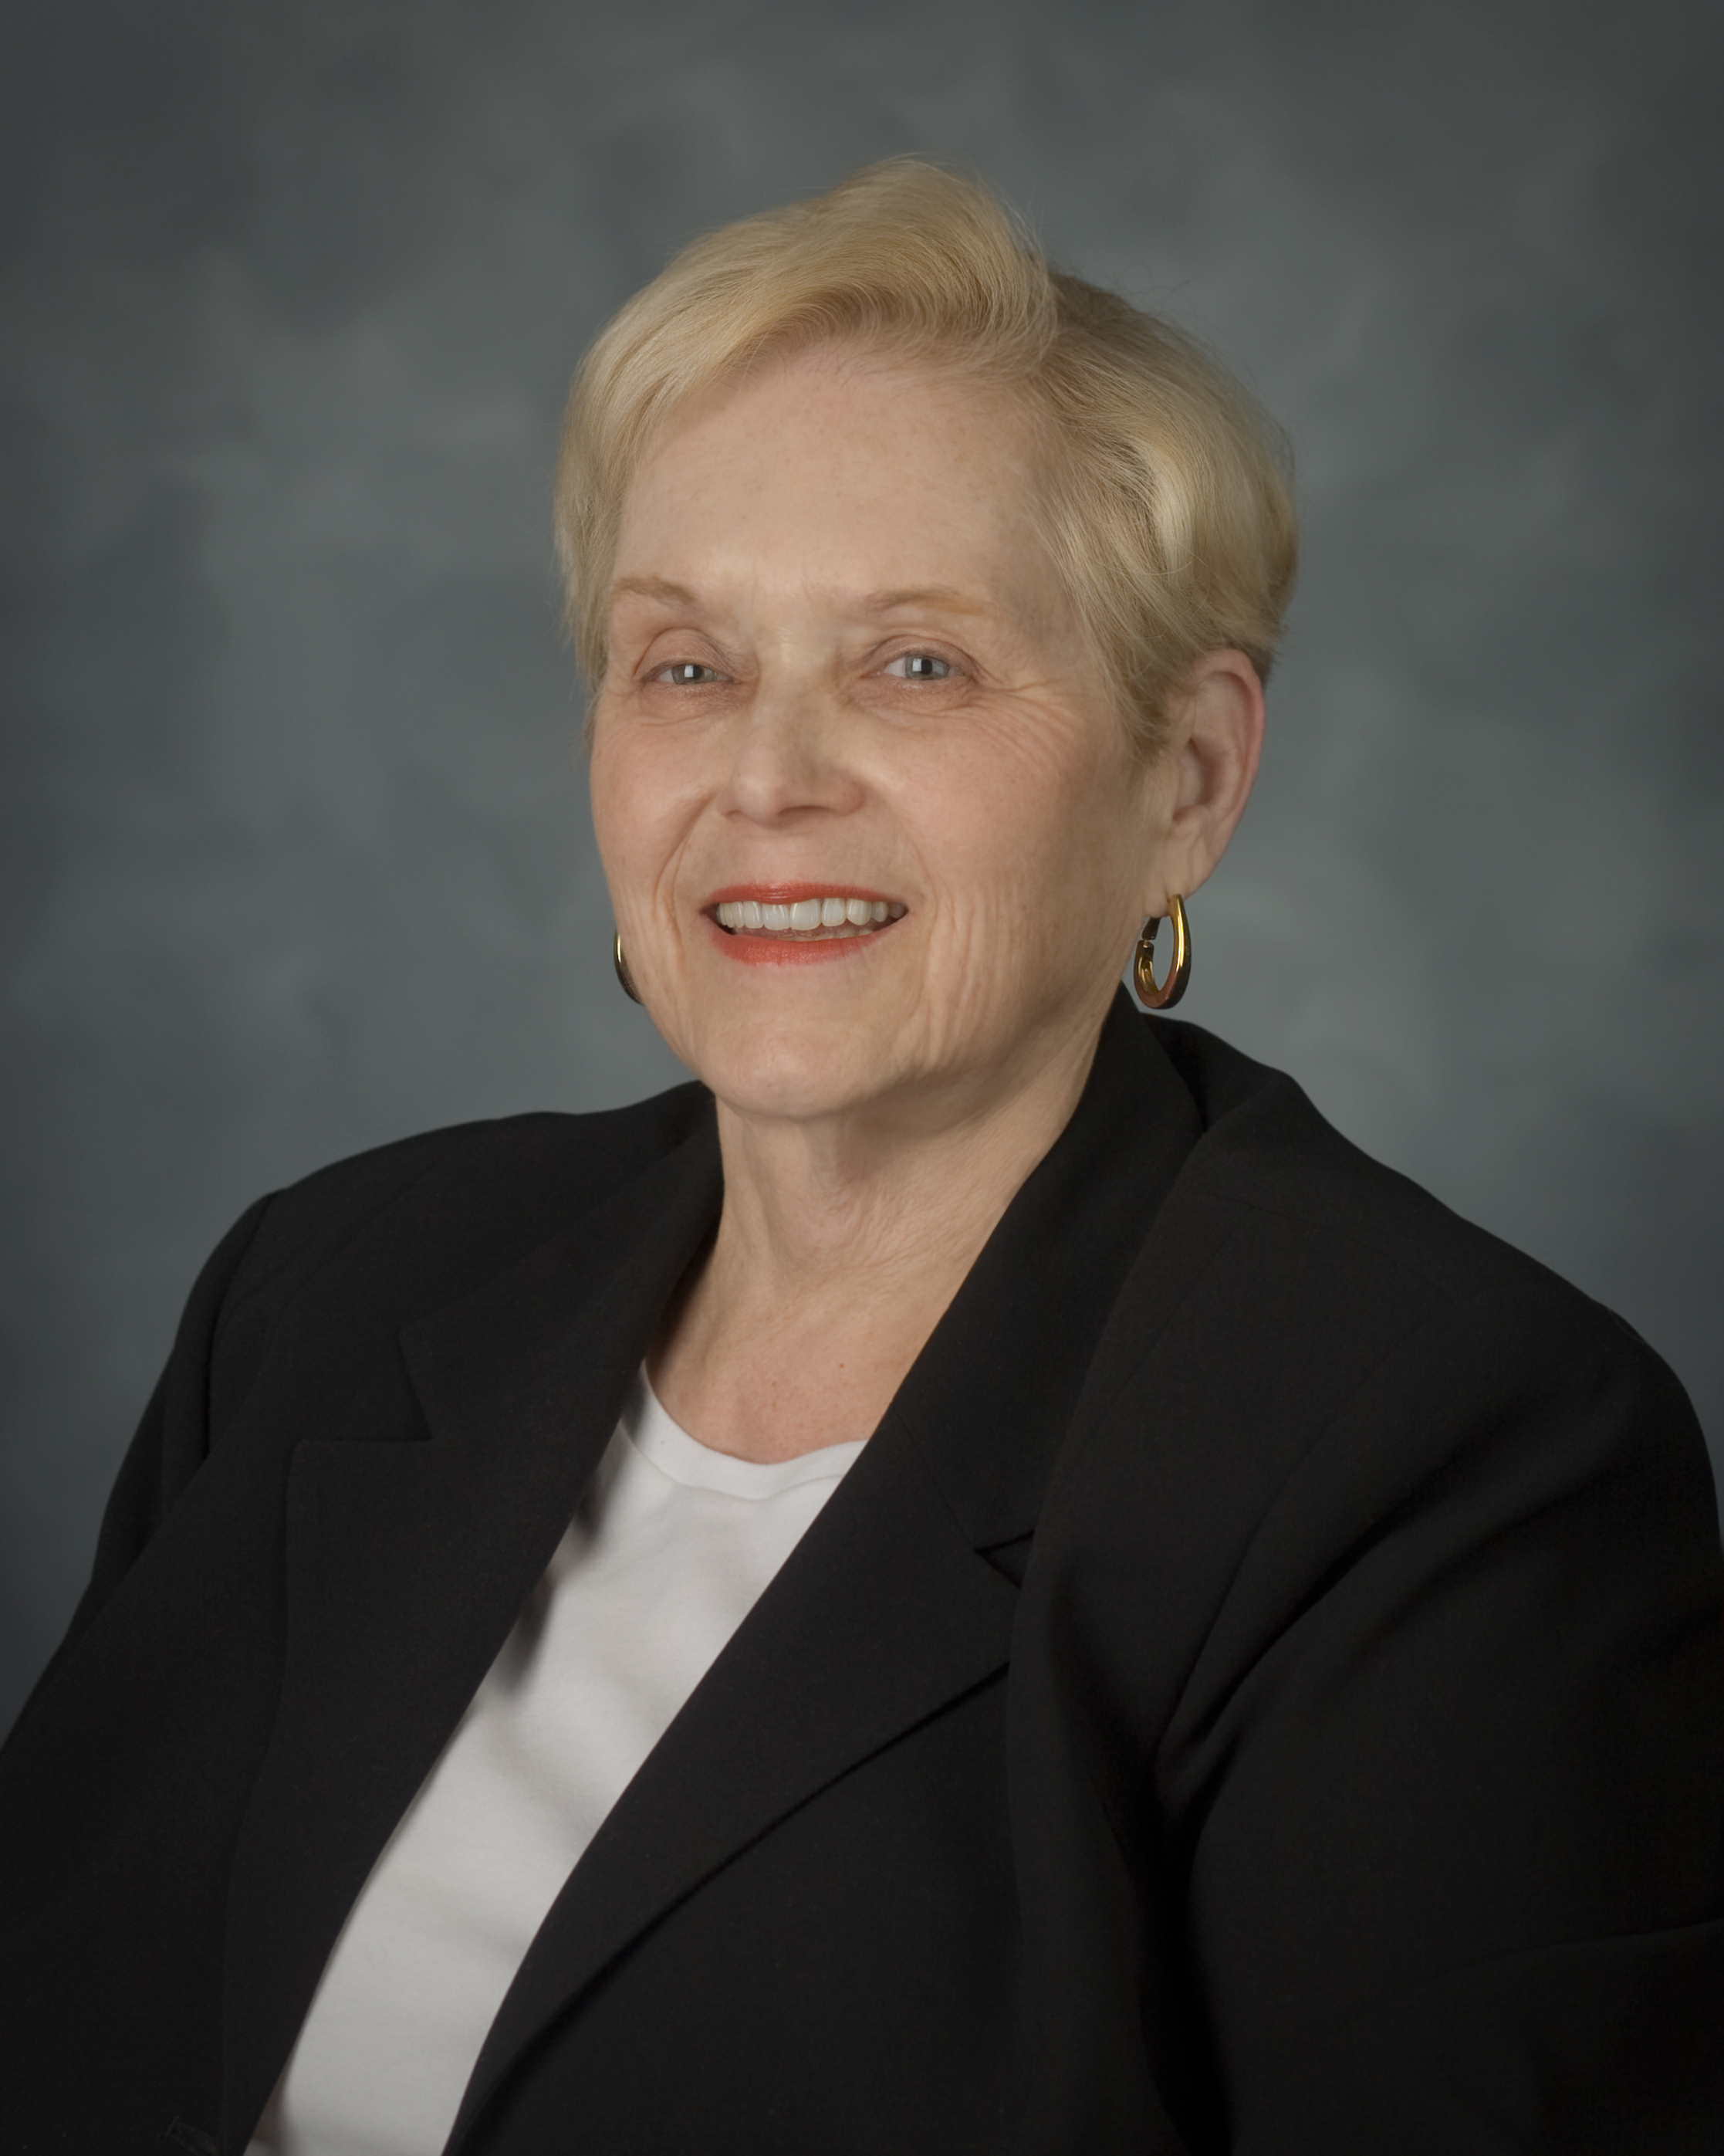 Jeanne Zmich, Vice President of Research